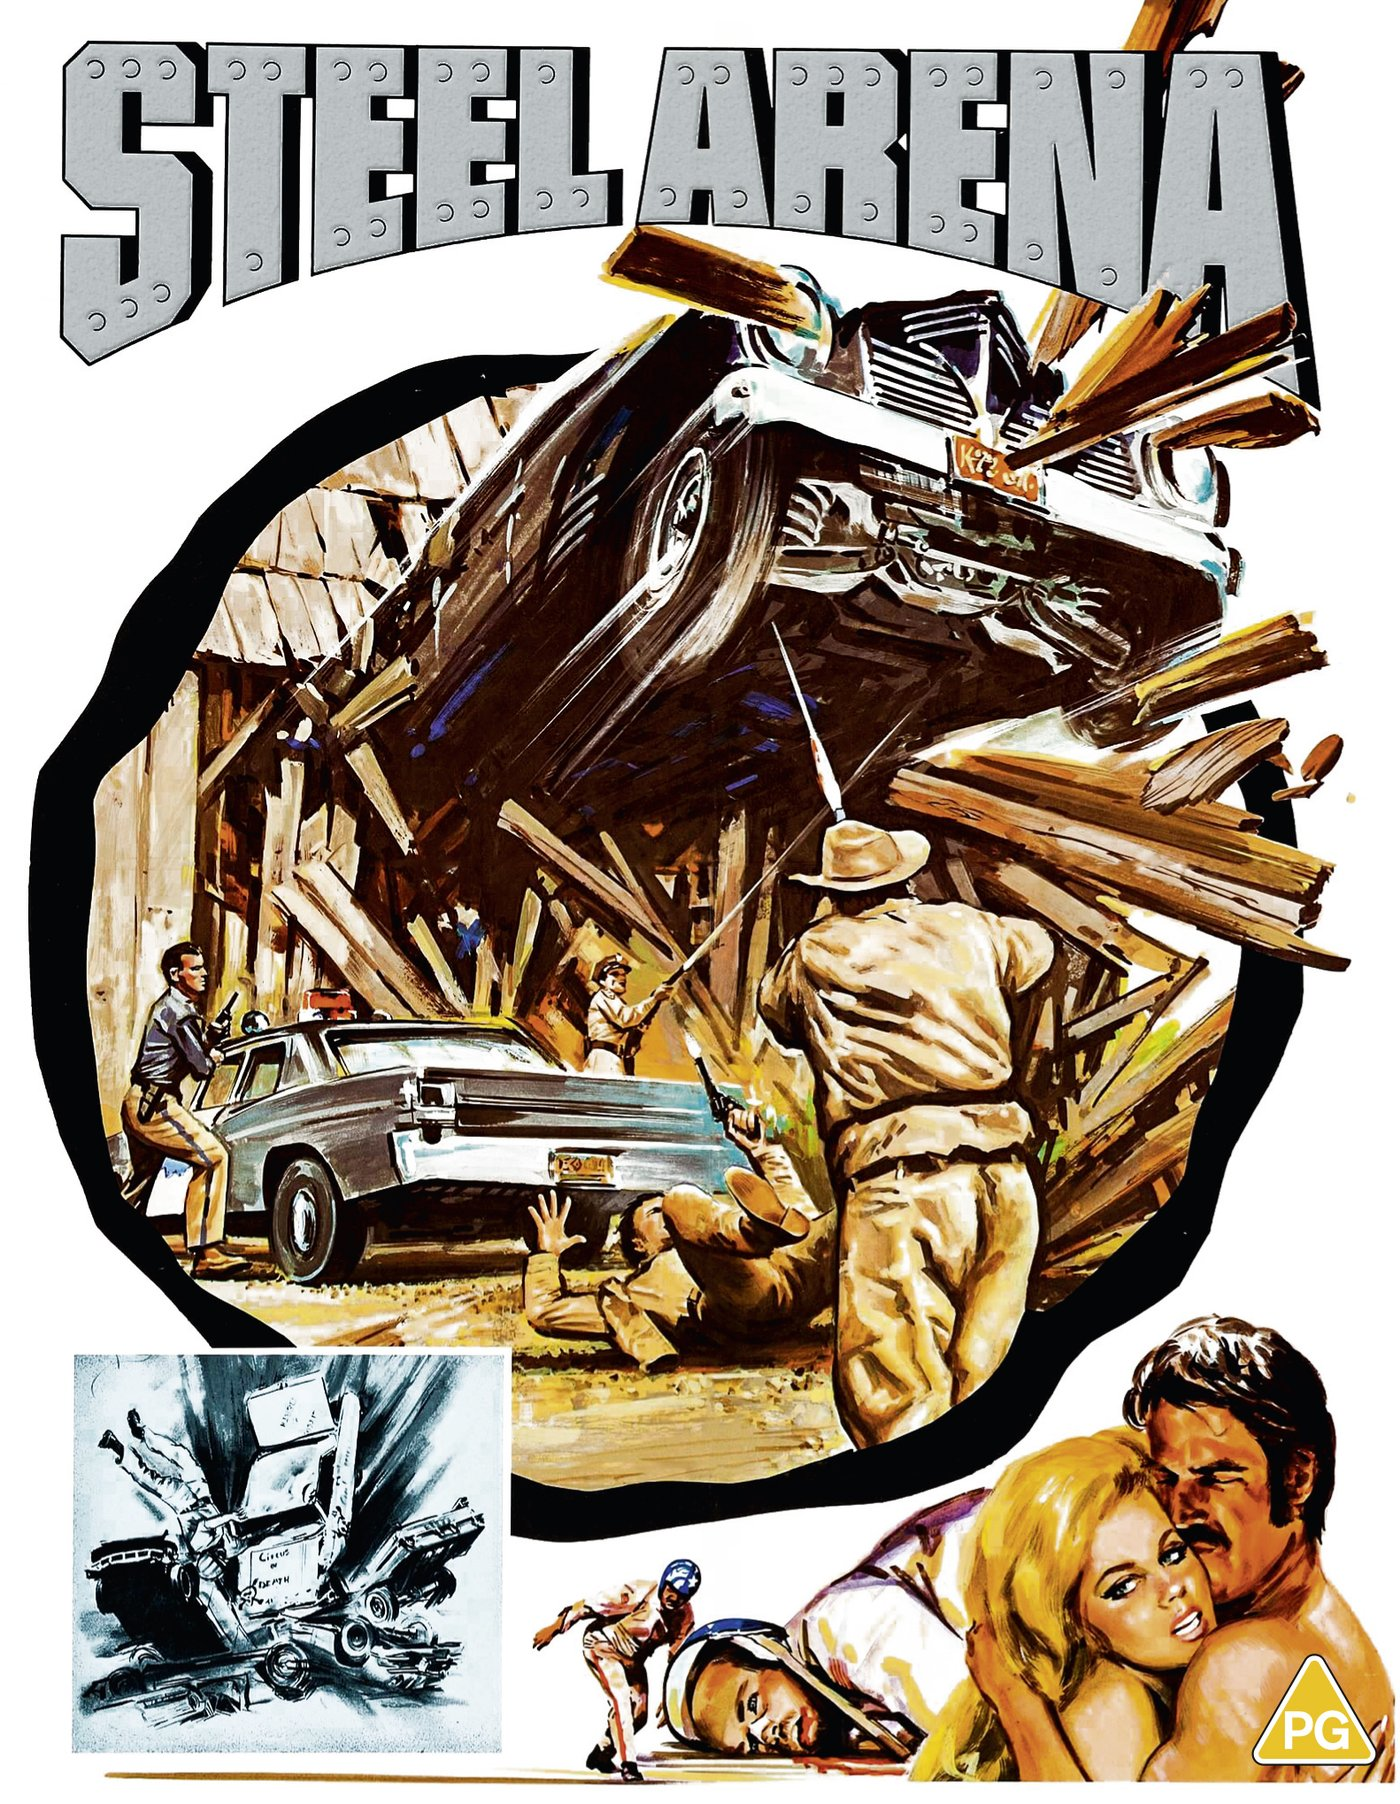 Mark L. Lester's TRUCK STOP WOMEN & STEEL ARENA Available on Blu-ray from 88 Films (UK / 5 April)